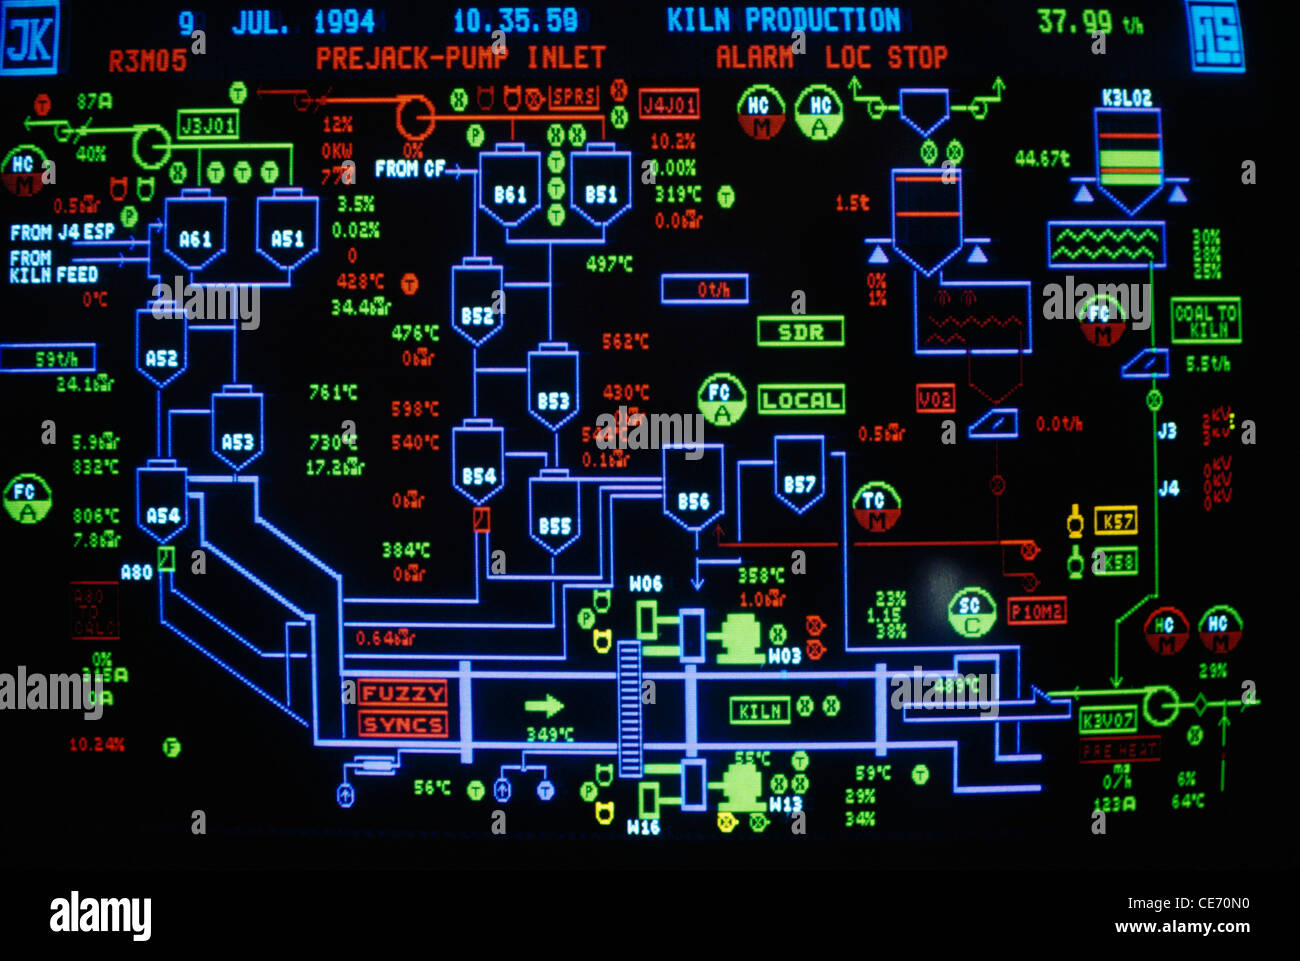 cement process flow diagram 99 ford expedition fuse panel hma 84084 : control chart display computer screen ...